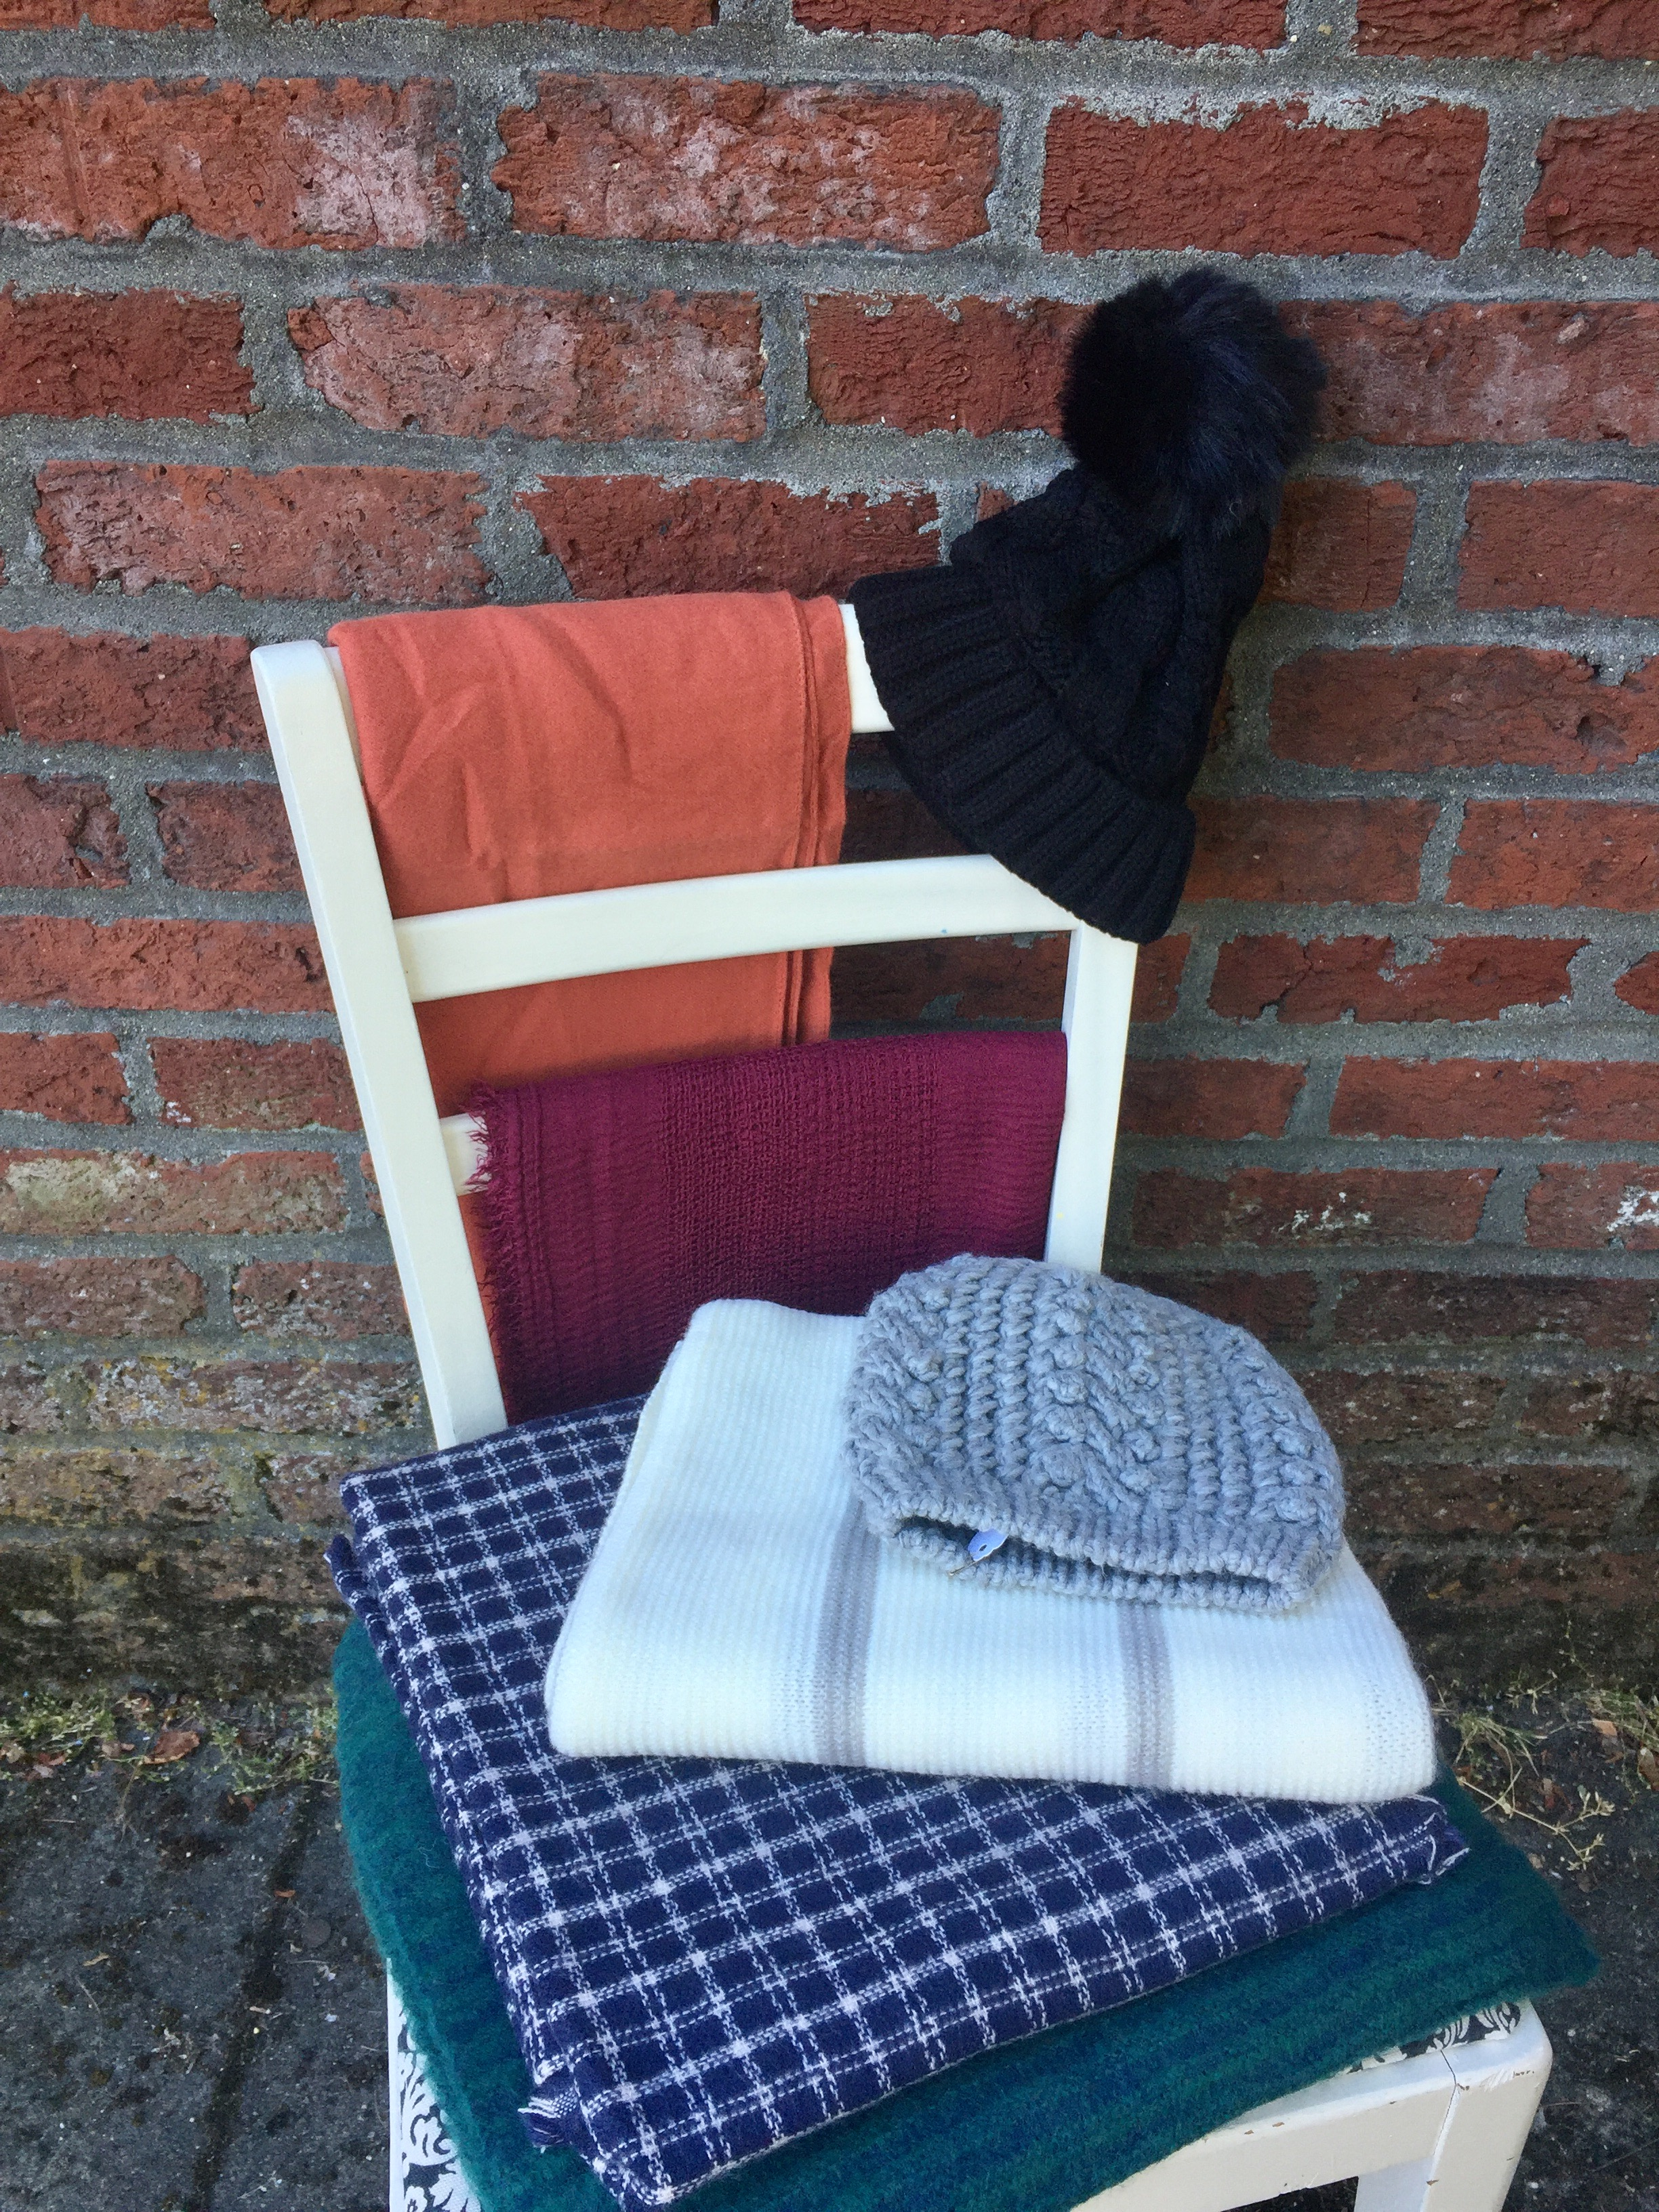 Hats and Scarfs (range from $16 to $24)